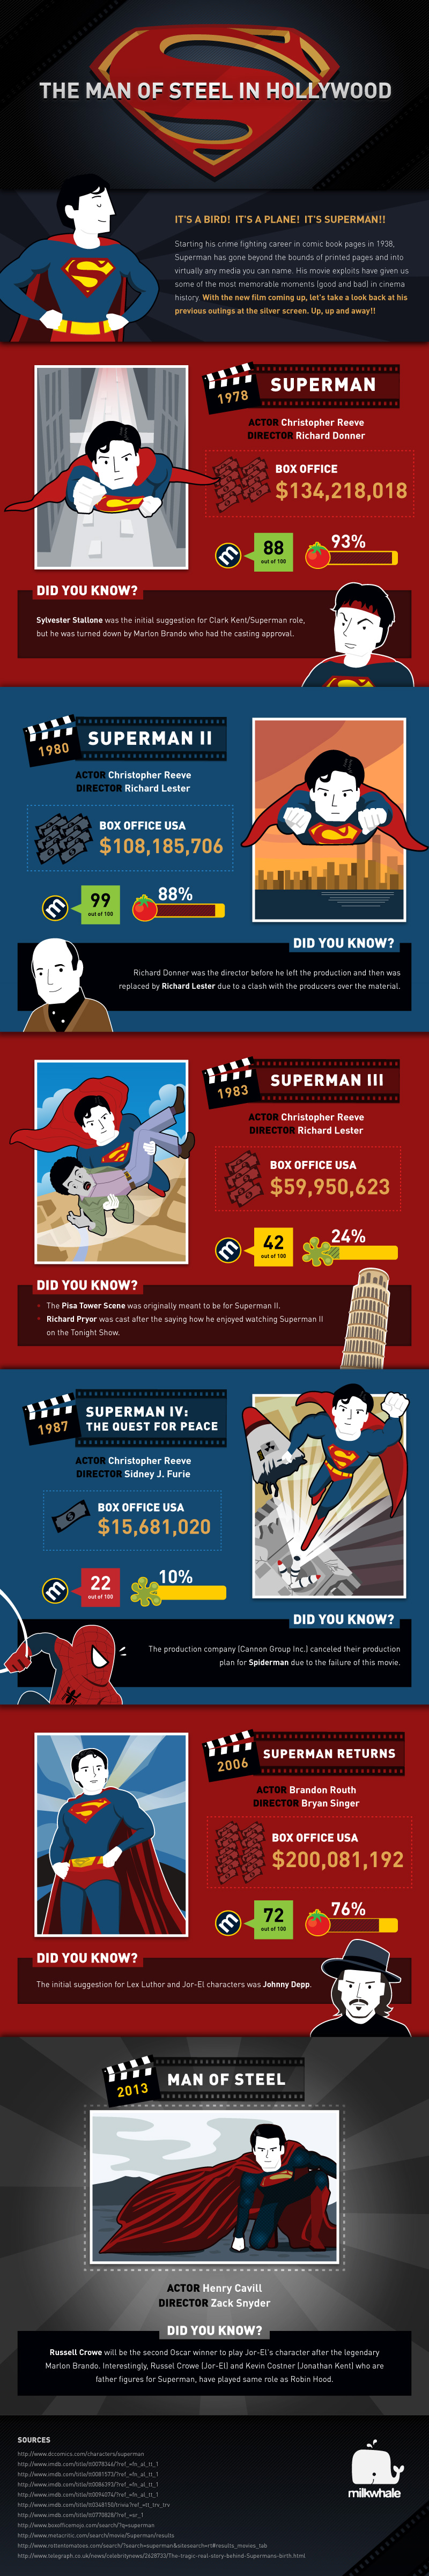 The Man of Steel in Hollywood